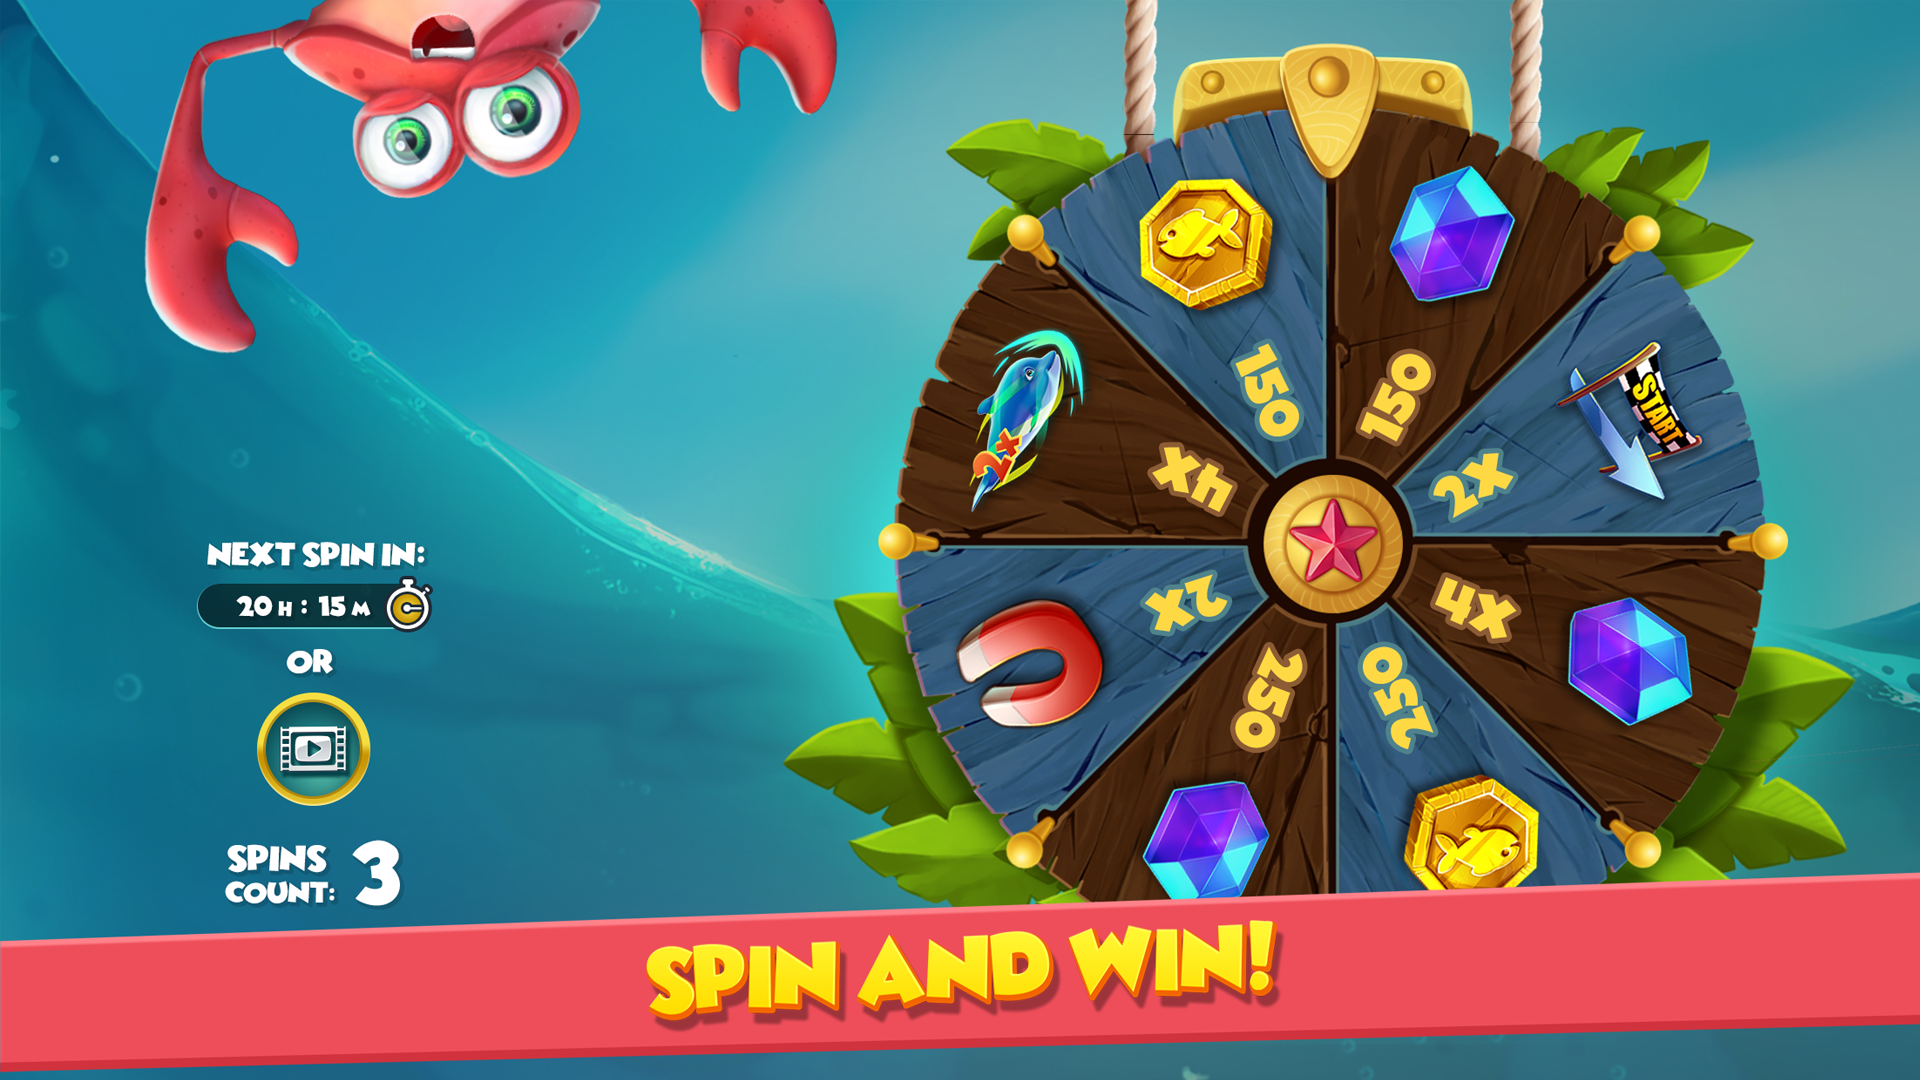 SpinAndWin_1920x1080.png